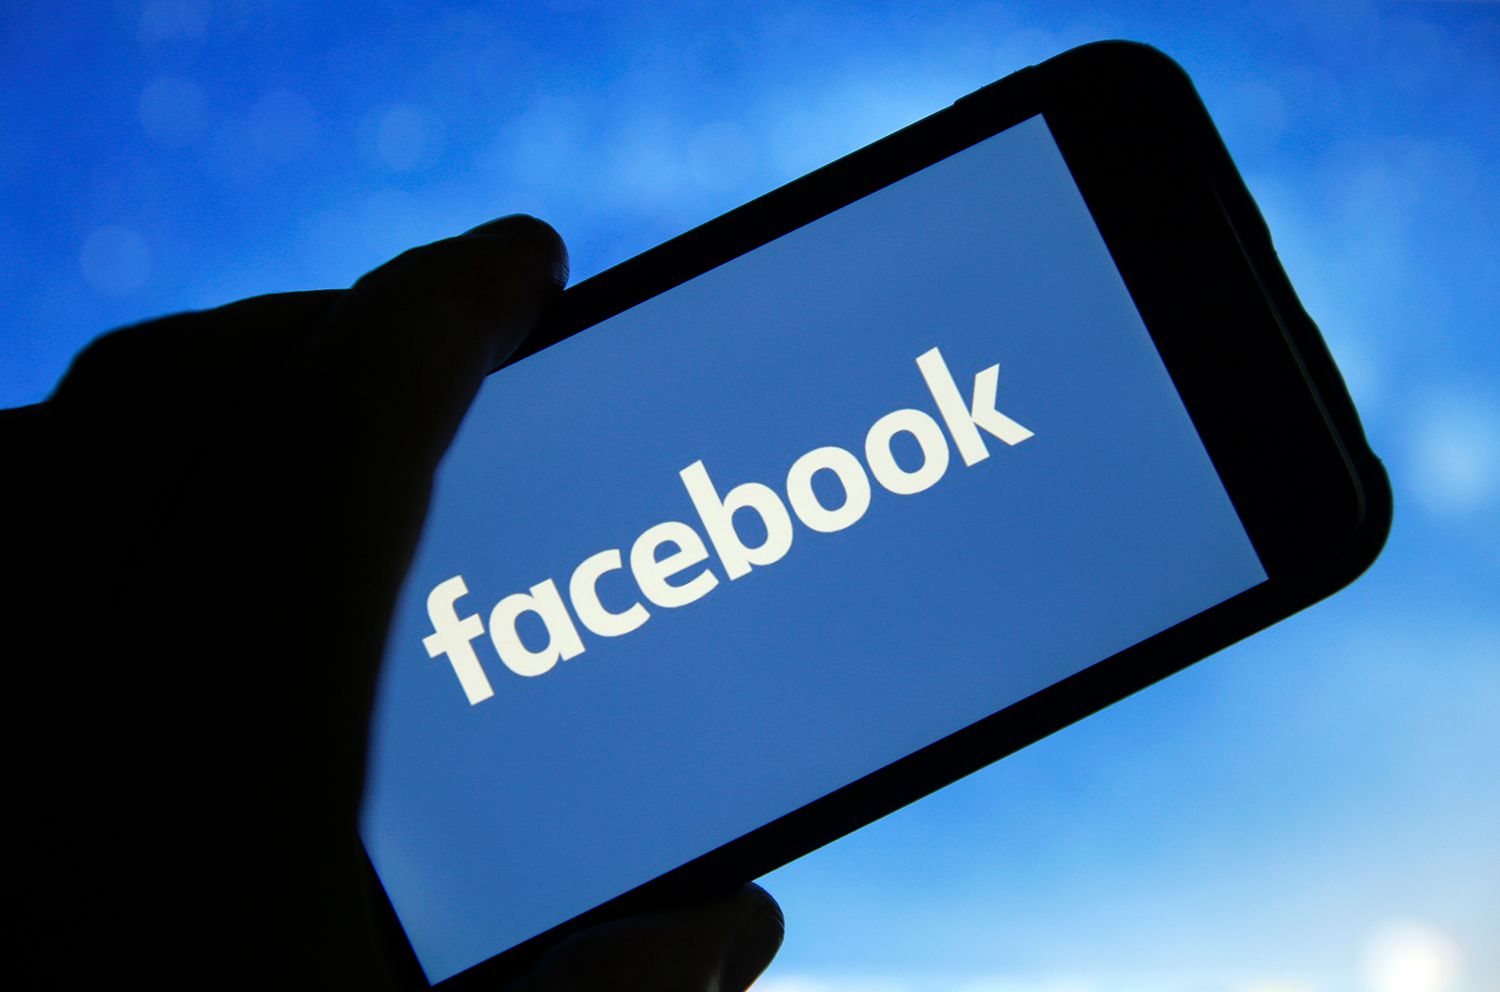 After winning the case, Facebook's share market valuation is over 1 trillion US dollars